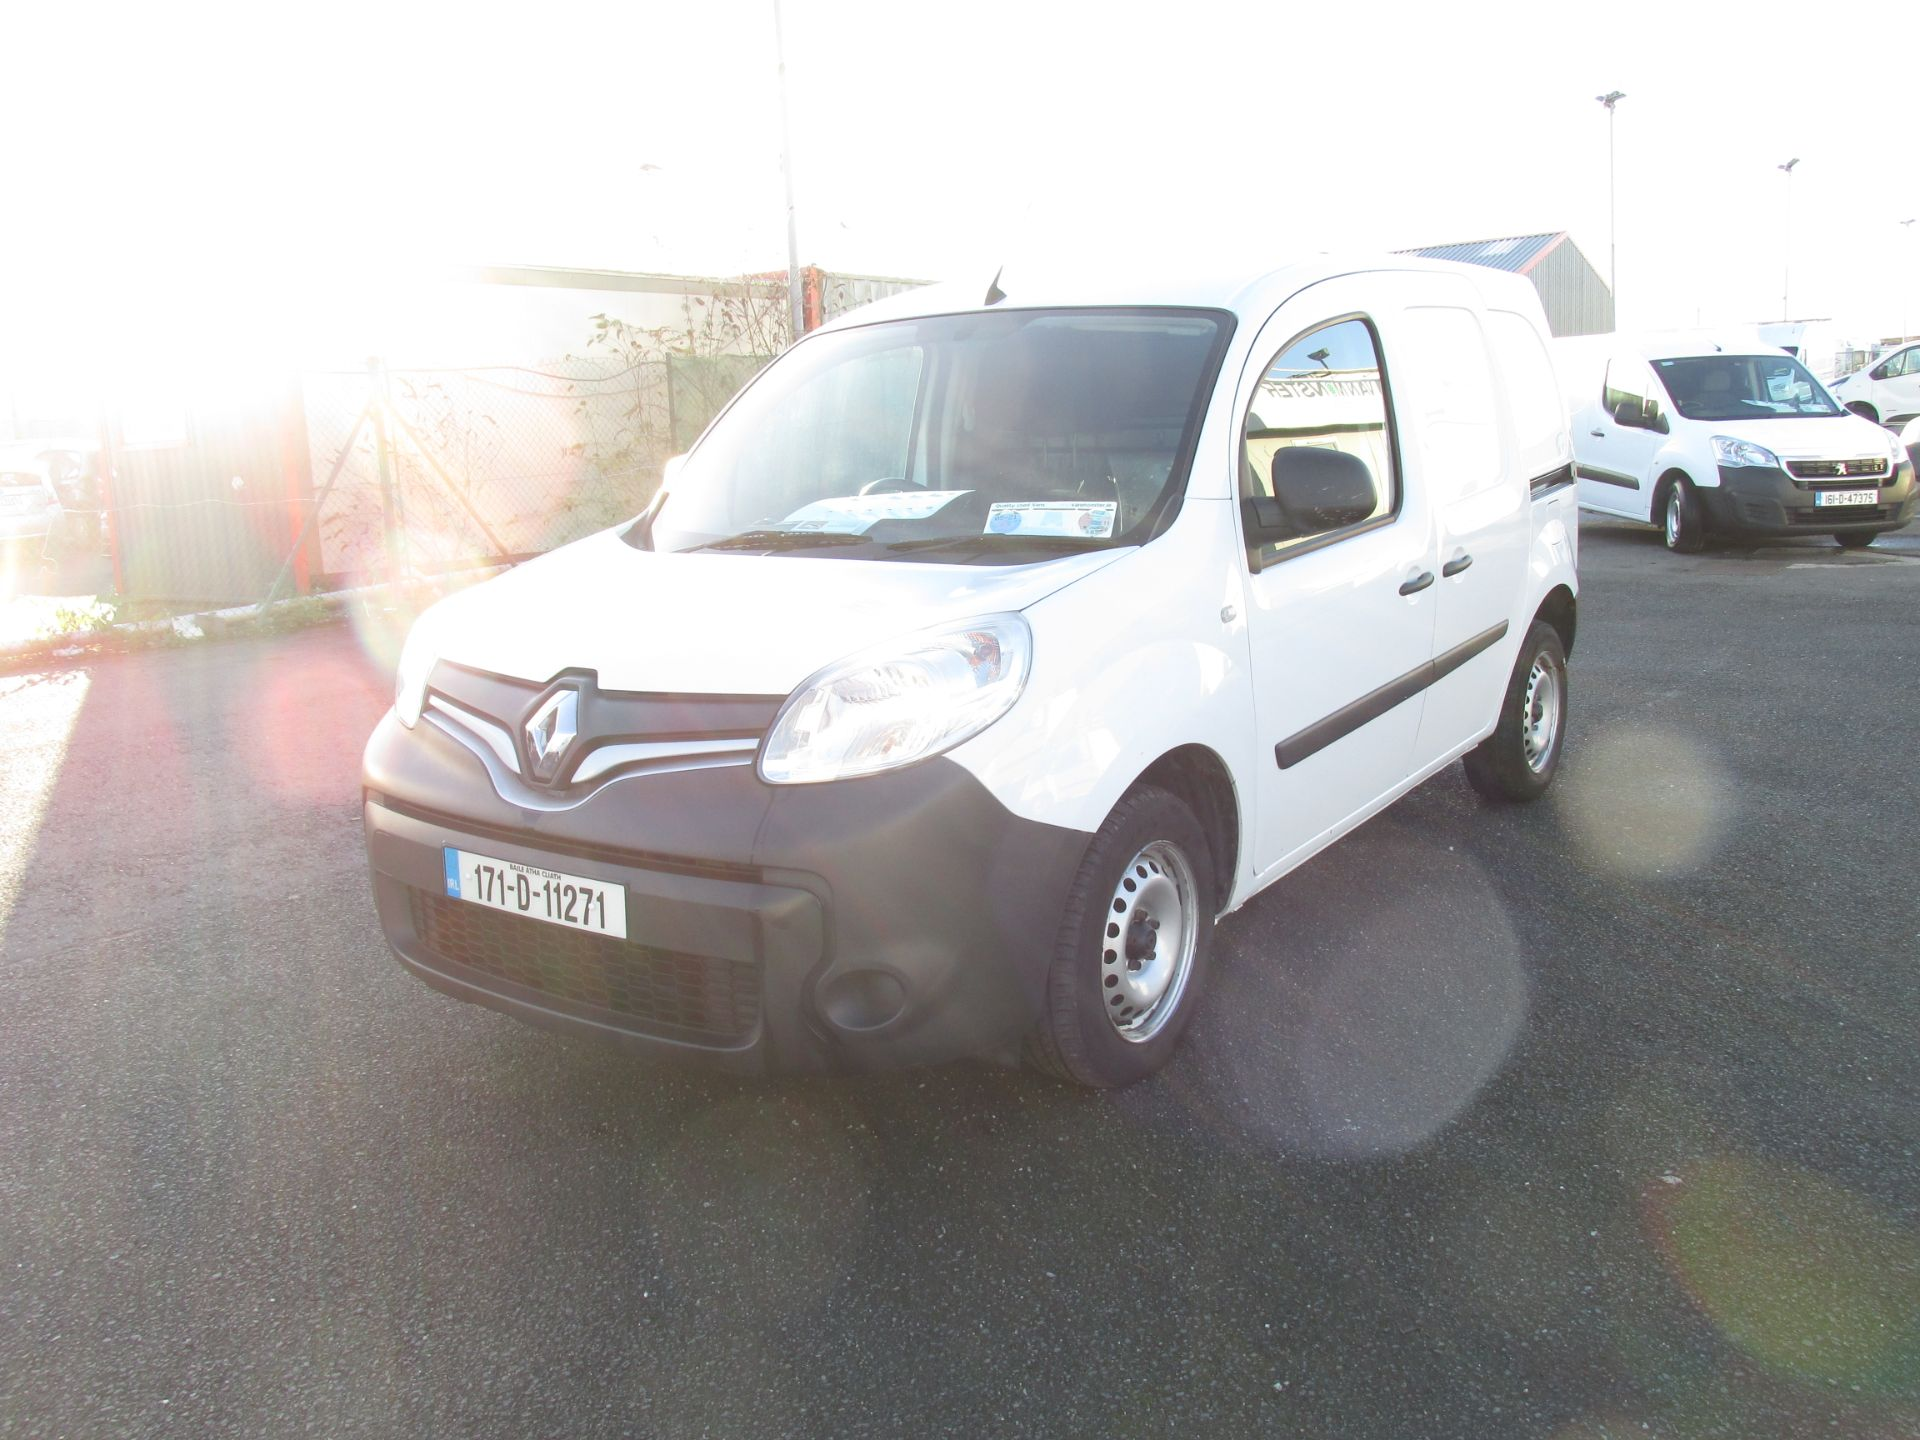 2017 Renault Kangoo ML19 Energy DCI 75 Business 2D click and collect call sales for more info (171D11271) Image 3